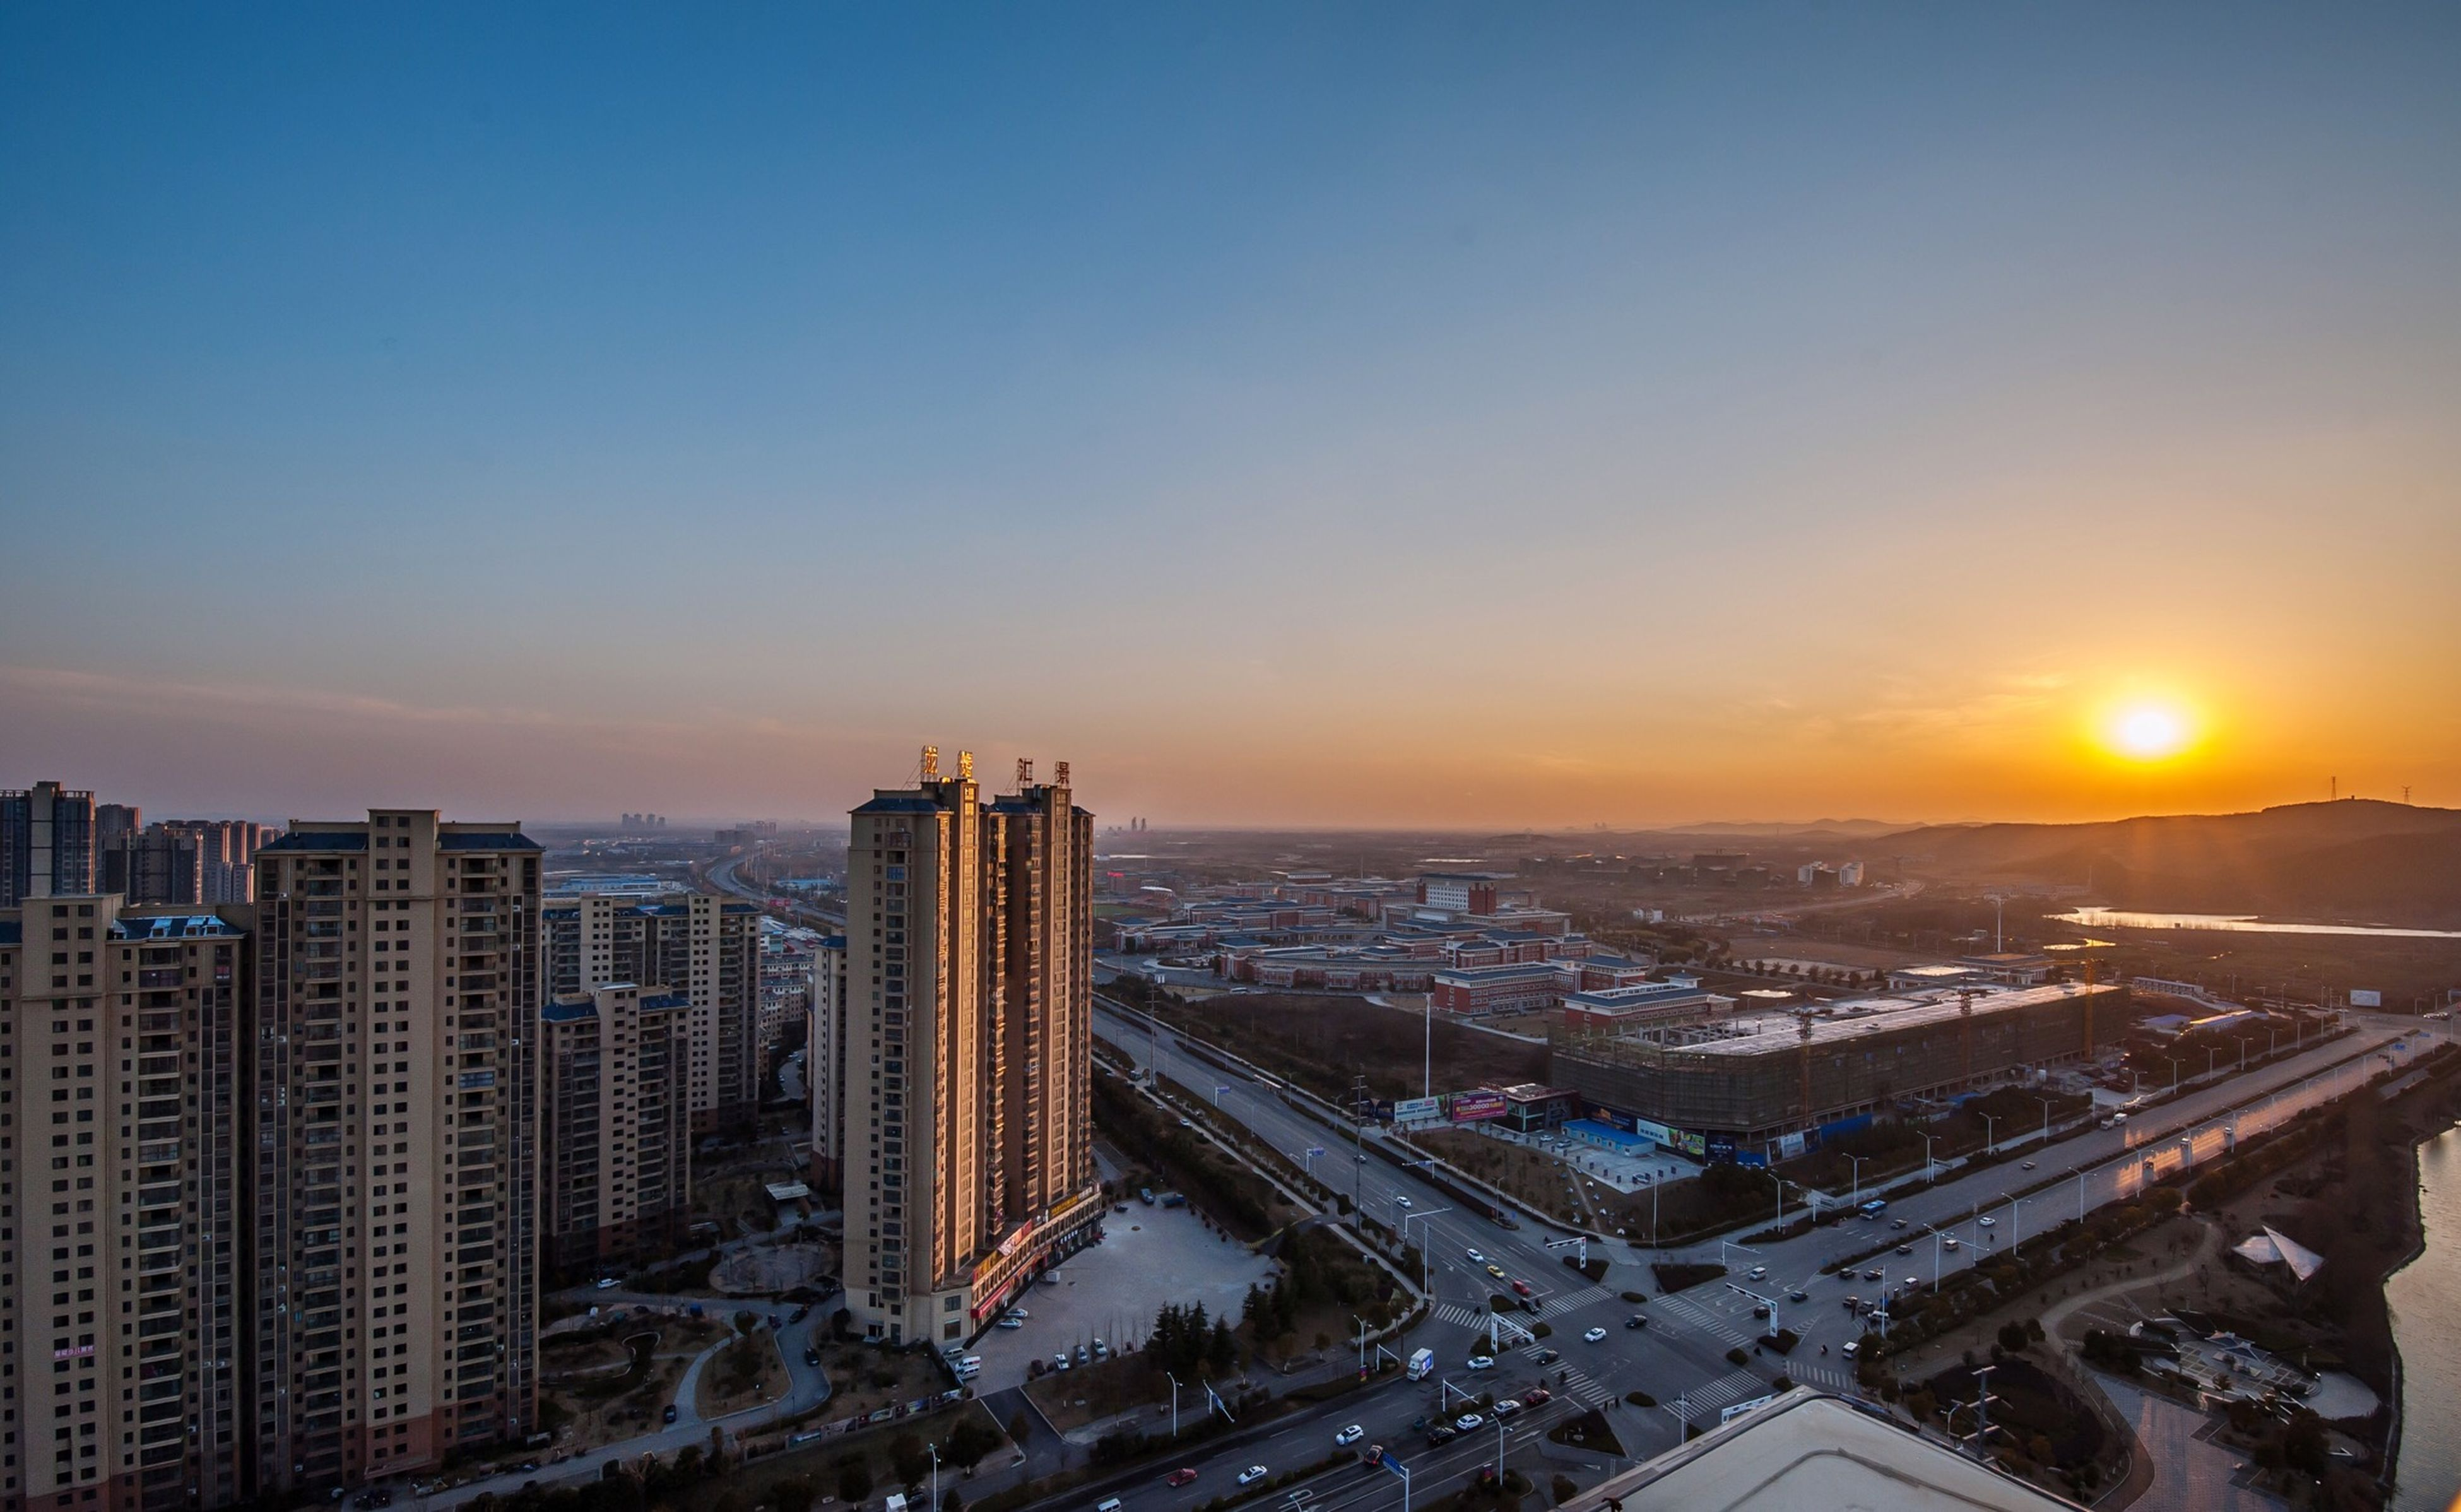 sunset, building exterior, city, architecture, cityscape, built structure, orange color, high angle view, copy space, clear sky, city life, illuminated, sky, crowded, residential building, residential district, no people, outdoors, skyscraper, aerial view